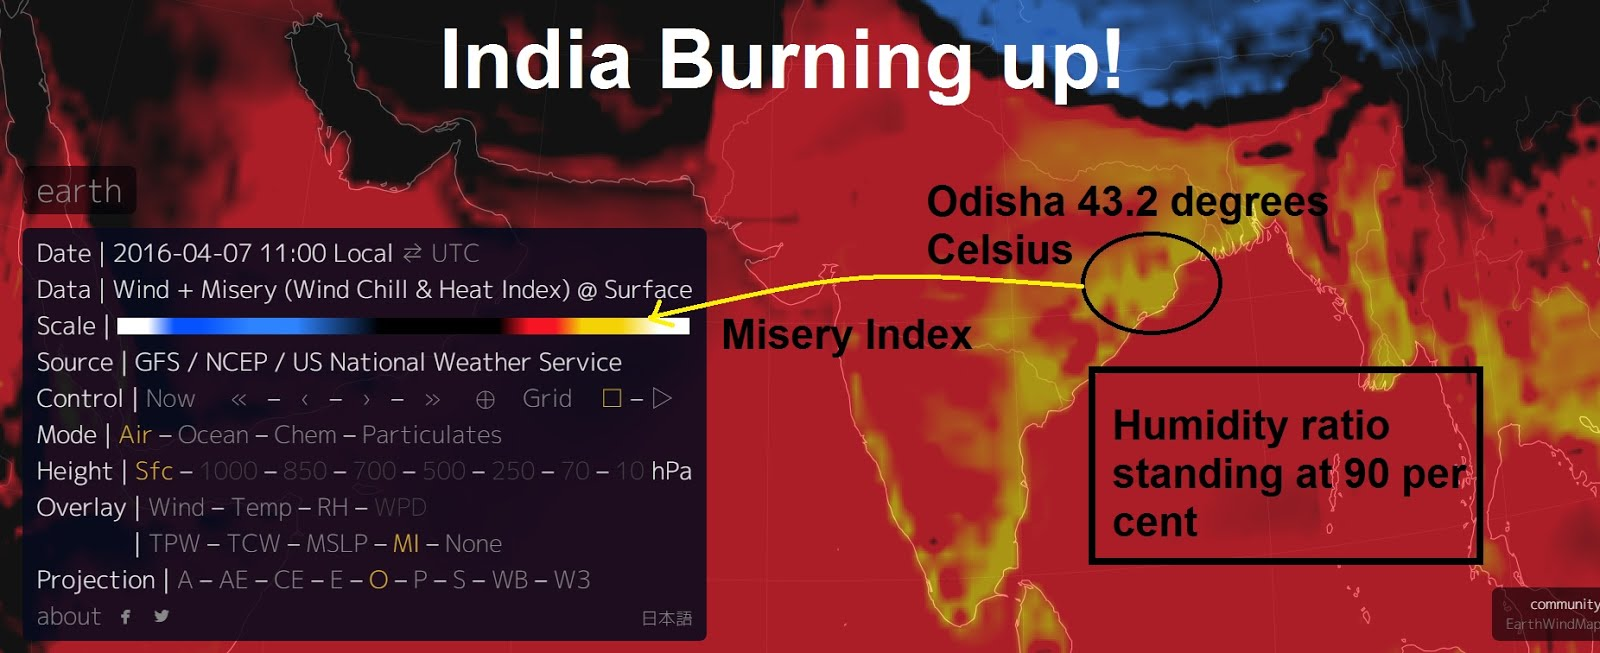 India burning! Unbearable heat due to the 90% humidity factor as temperatures hit 43.2 degrees Cels